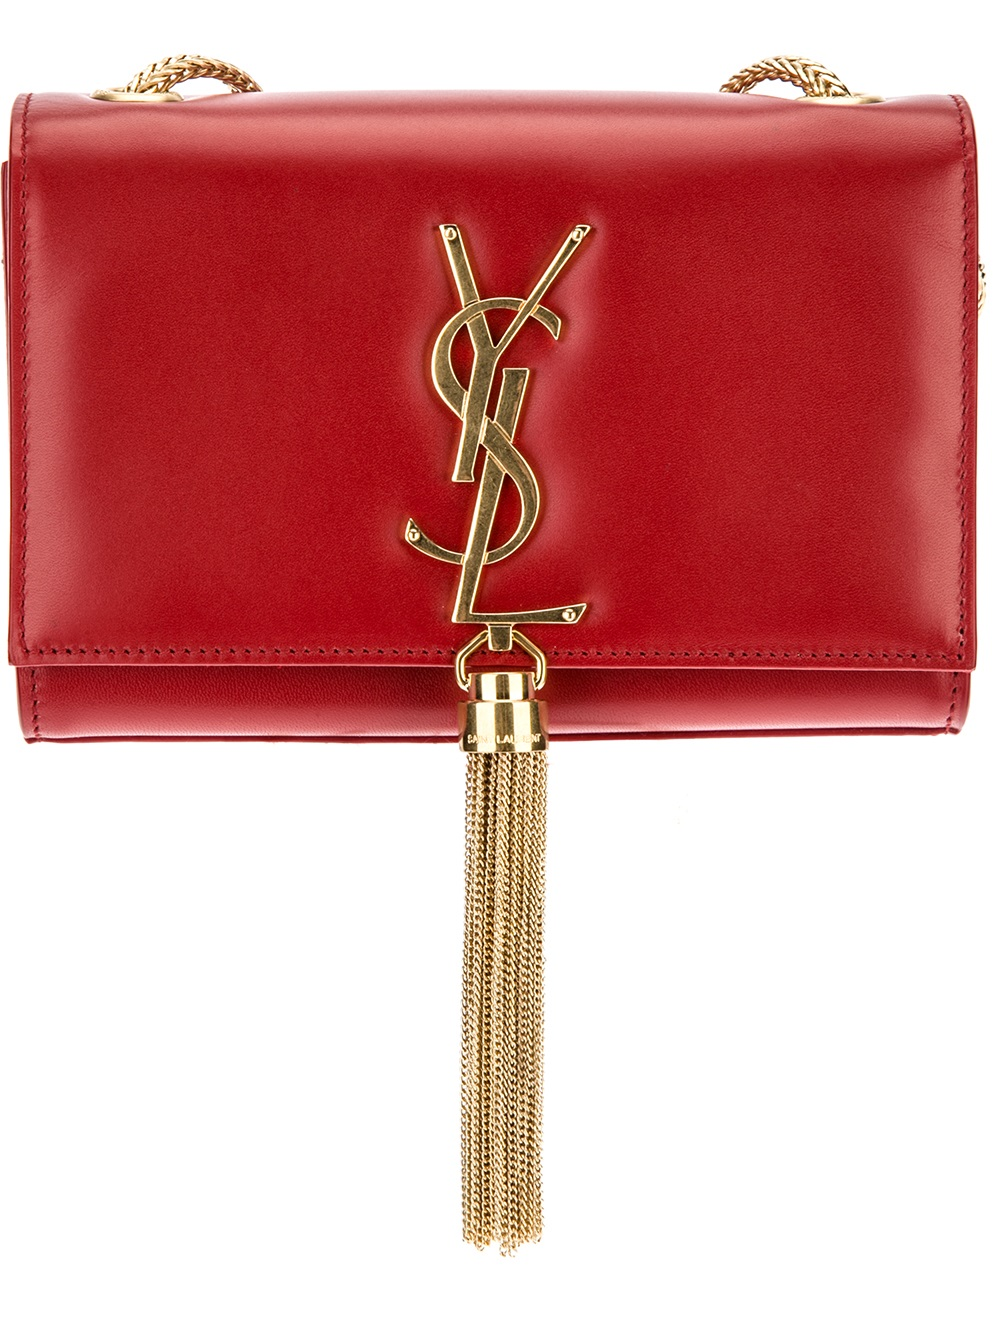 ad016007fa Lyst - Saint Laurent Small Cassandre Tassel Shoulder Bag in Red